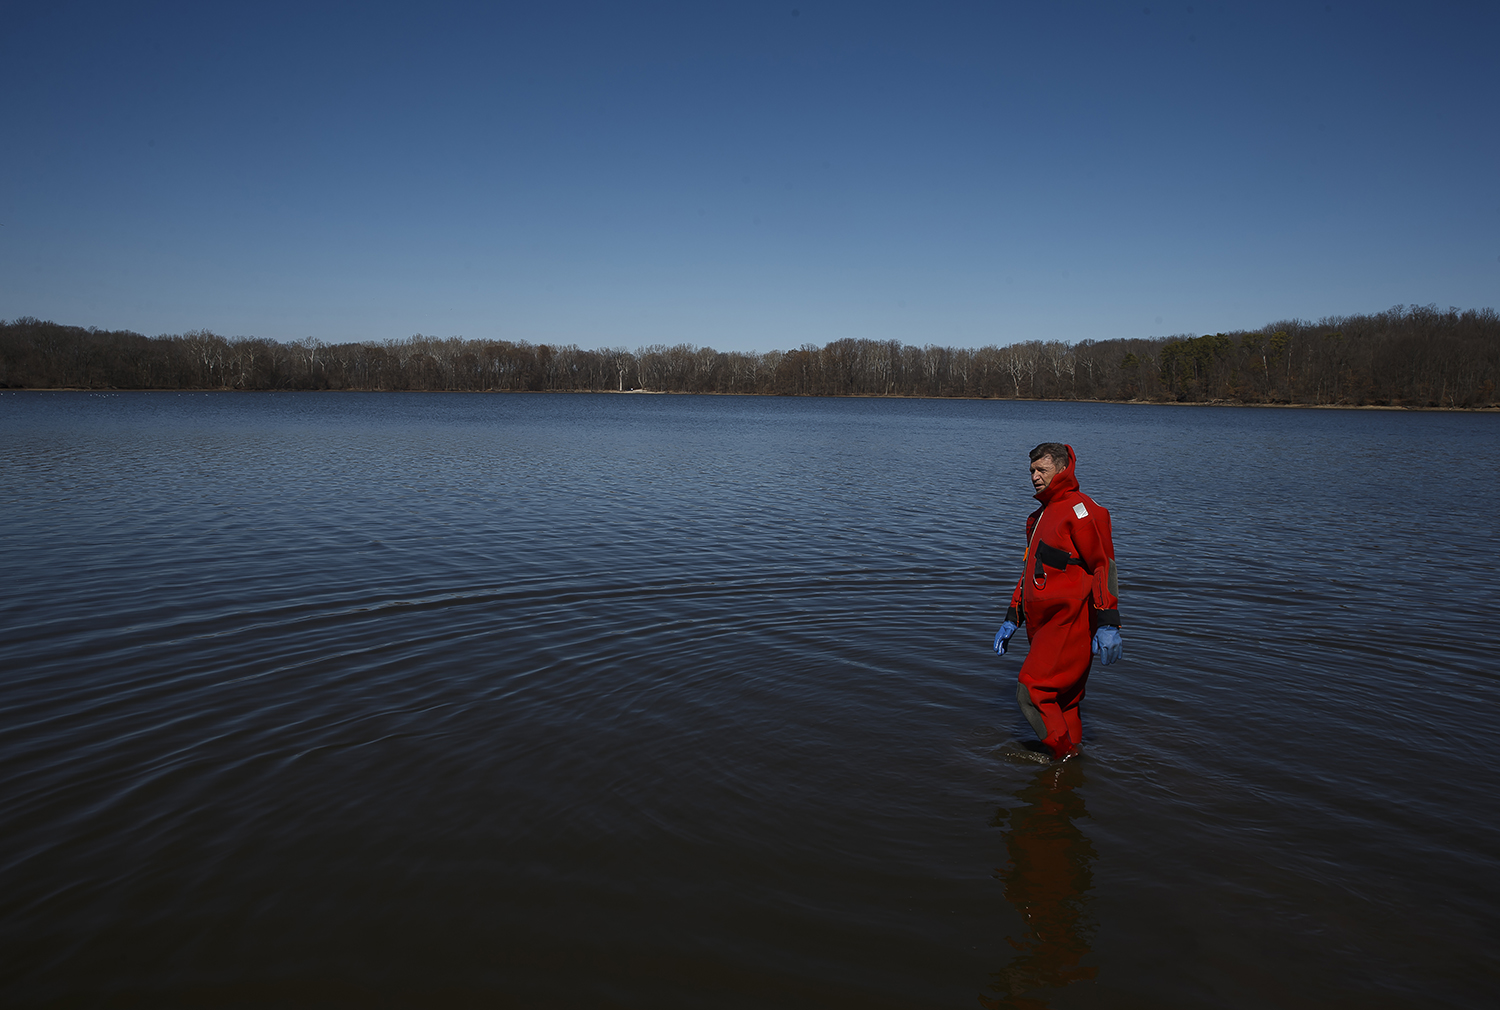 Captain Scott Weitekamp of the Springfield Fire Department looks for any large rocks or debris to remove from the plunge area during the 2018 Polar Plunge benefiting the Special Olympics Illinois on Lake Springfield at the Knights of Columbus Lake Club, Saturday, March 3, 2018, in Springfield, Ill. The low levels of Lake Springfield caused the plunge to be a bit shorter than usual as they didn't want participants to get stuck in the muck. [Justin L. Fowler/The State Journal-Register]